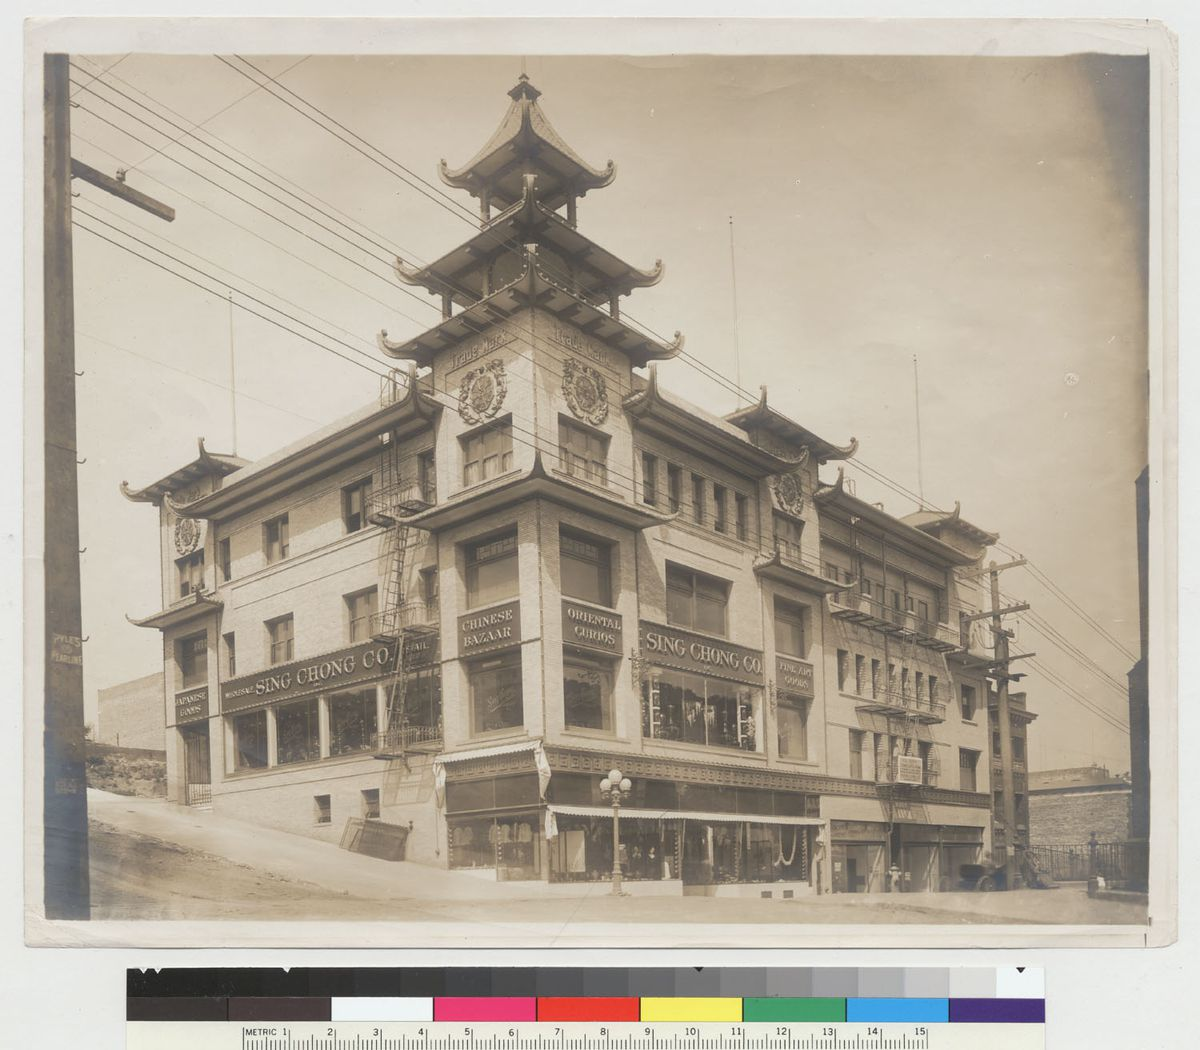 The Sing Chong building, 1910.